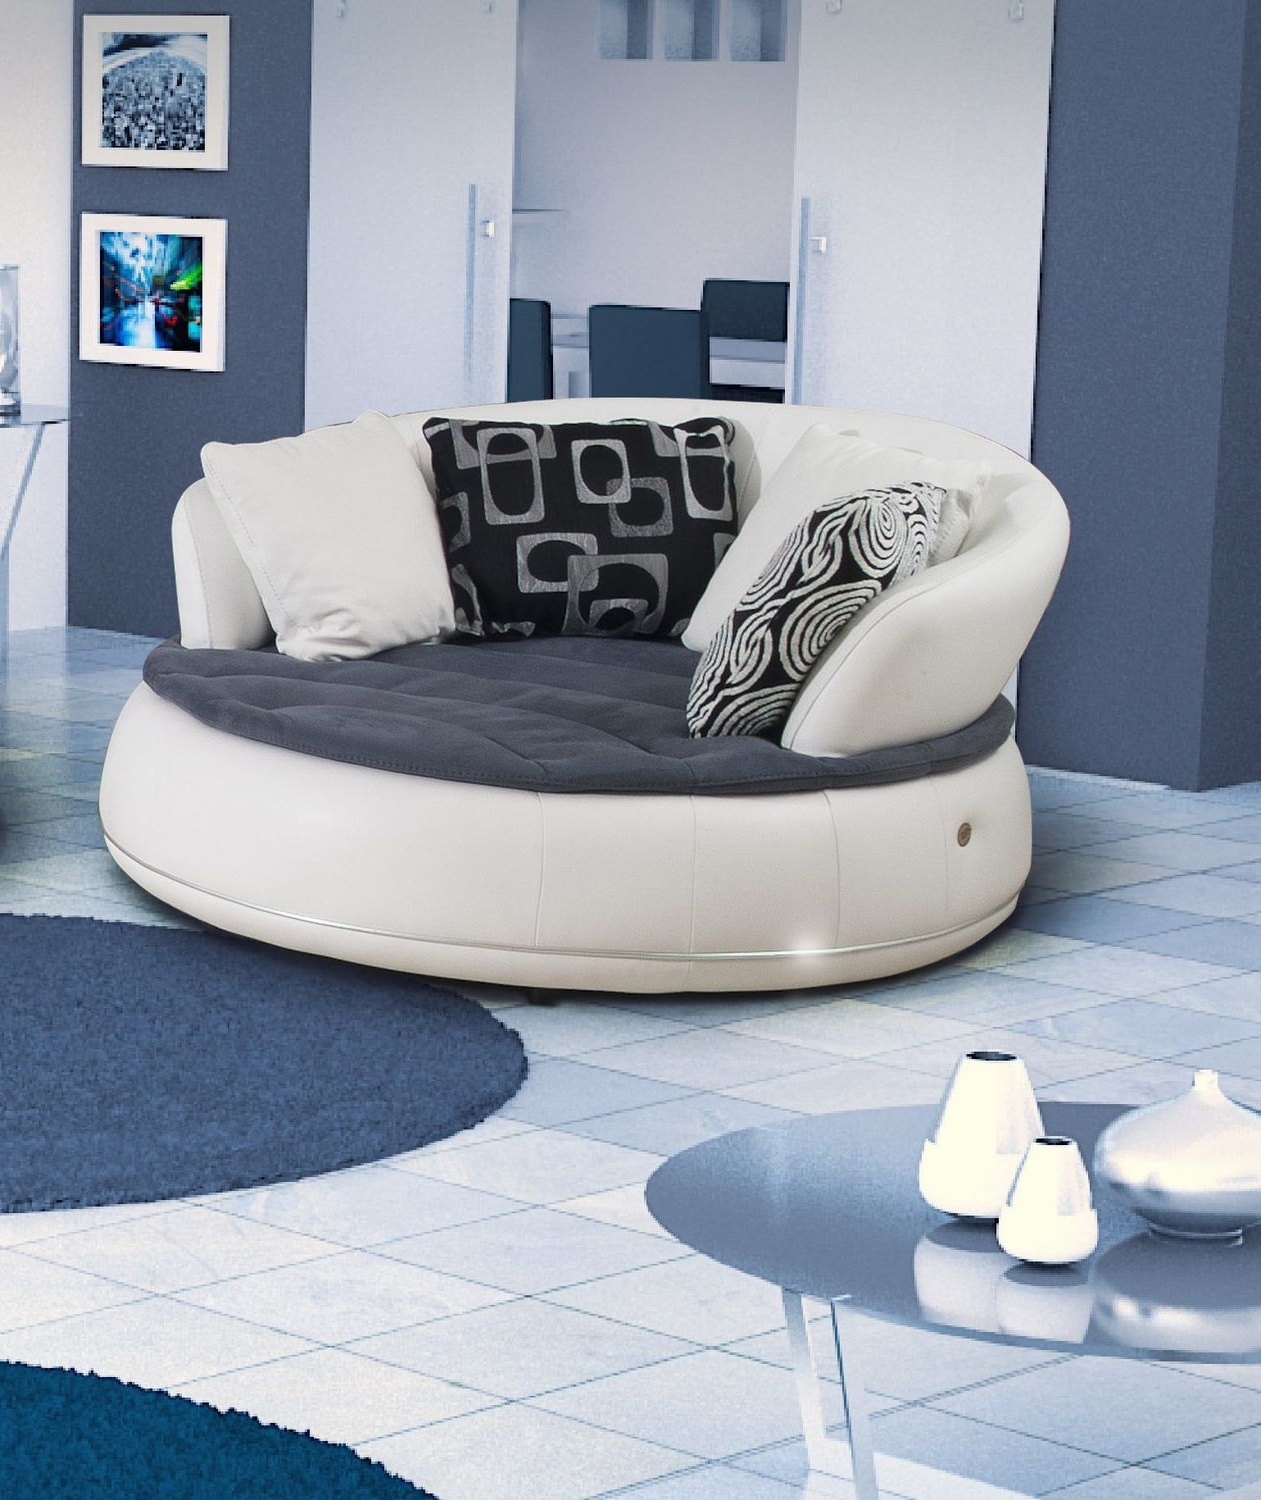 Newest Semicircular Sofa / Round / Contemporary / Leather – Espace – Nieri Pertaining To Semicircular Sofas (View 17 of 20)